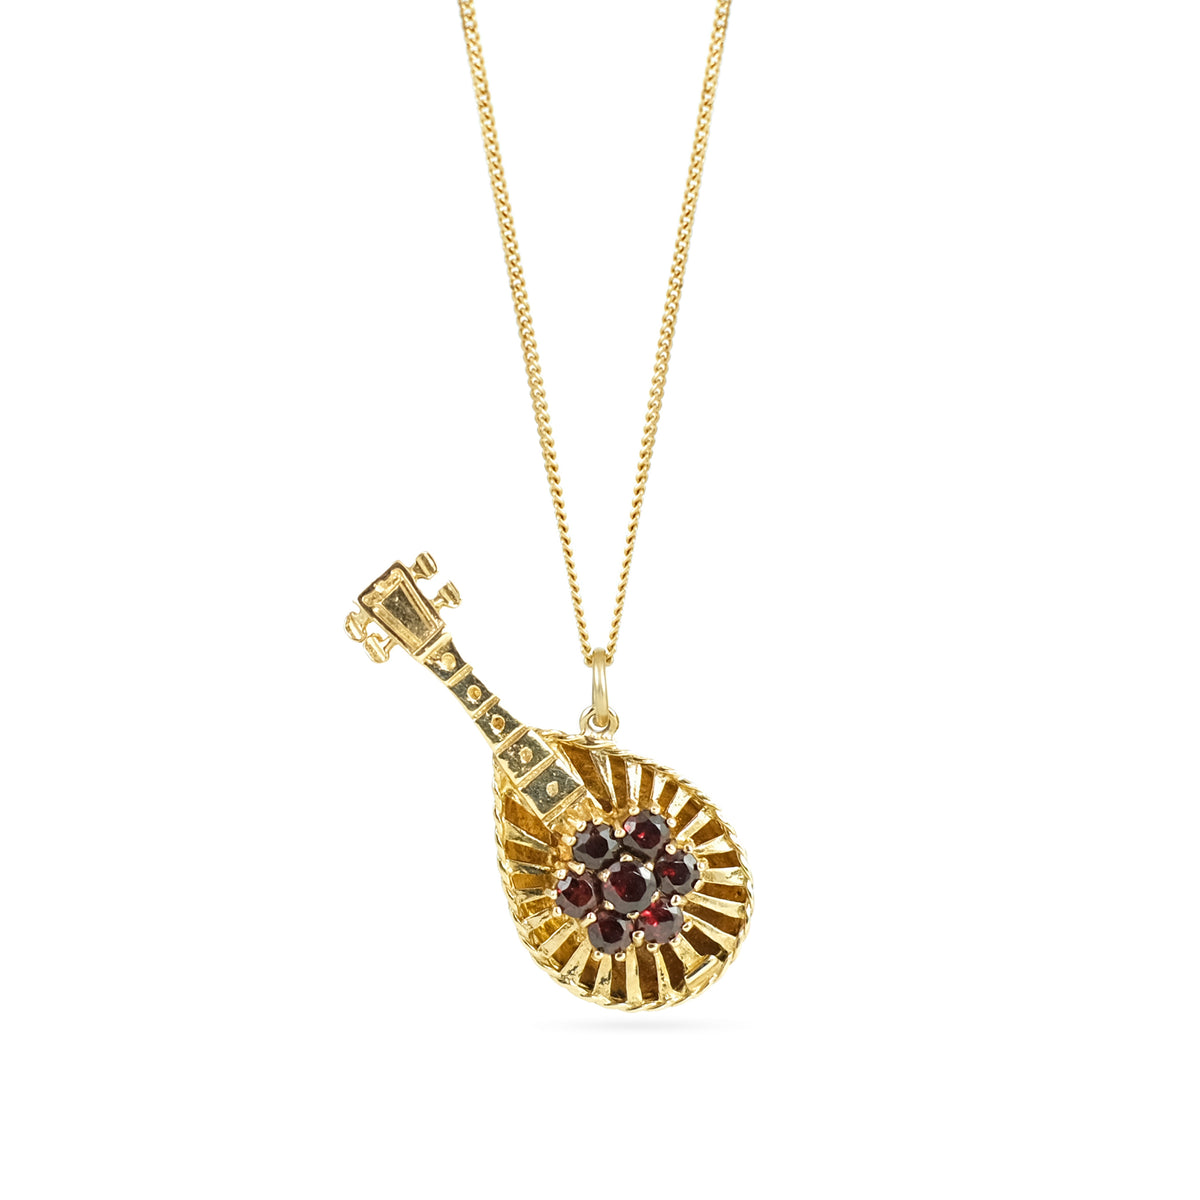 Vintage 9ct Yellow Gold Garnet Lute Pendant